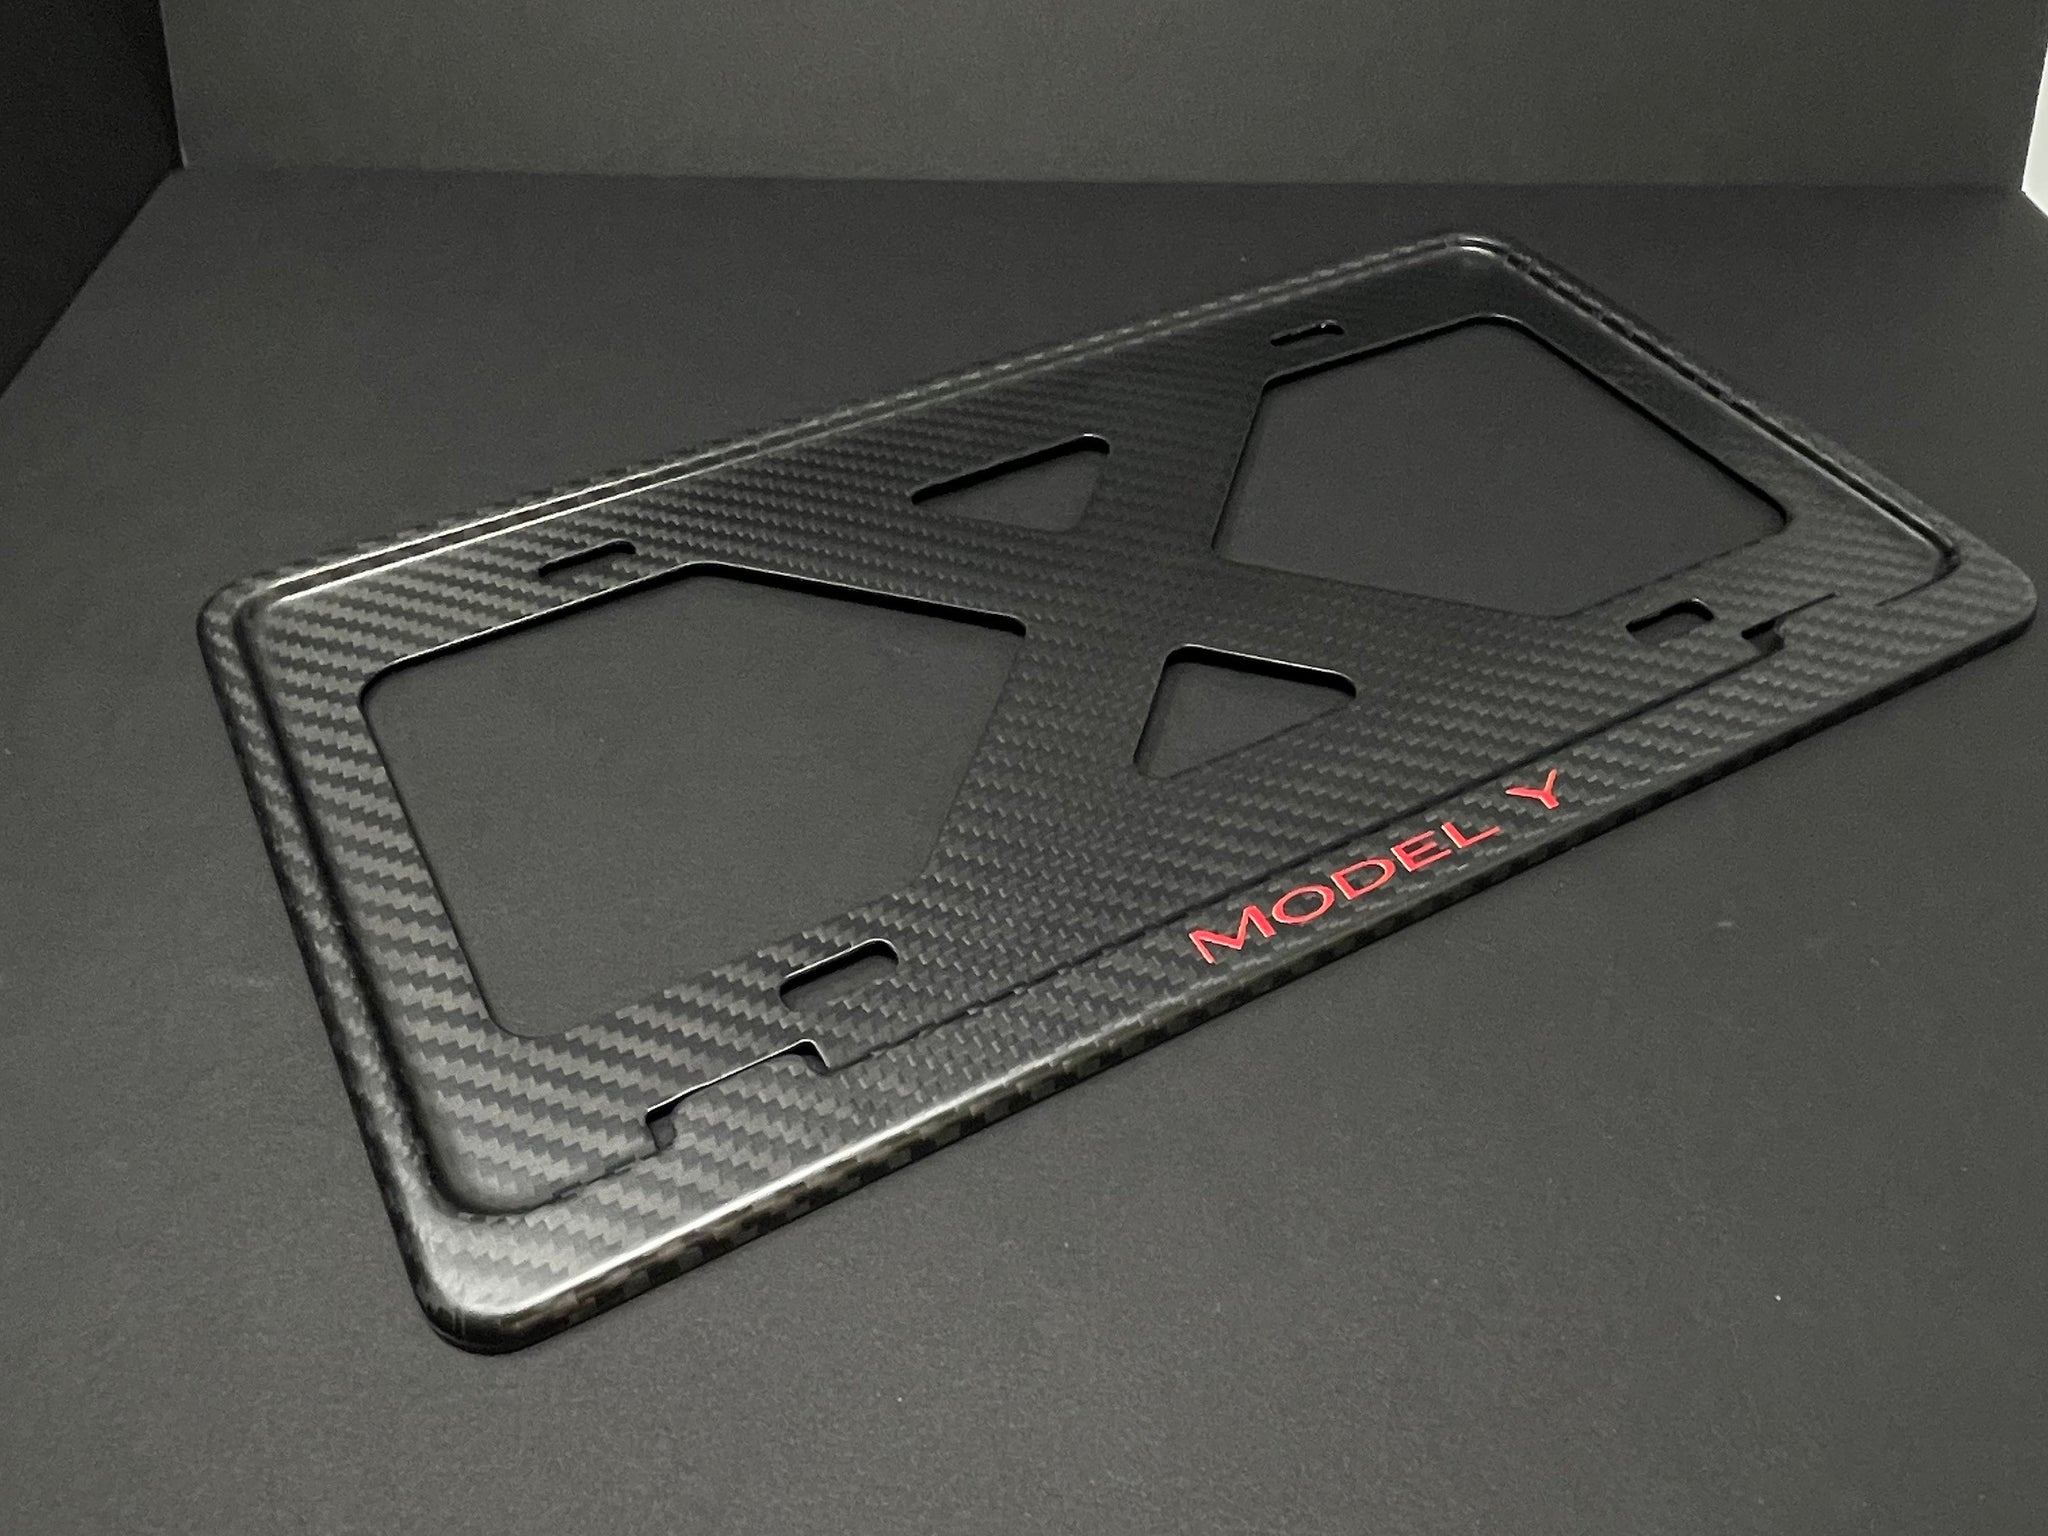 MODEL Y (Red) X Slim Matte Carbon Fiber License Plate Frame, Custom, Warranty, Tesla BORINGmod, Handmade from Cali